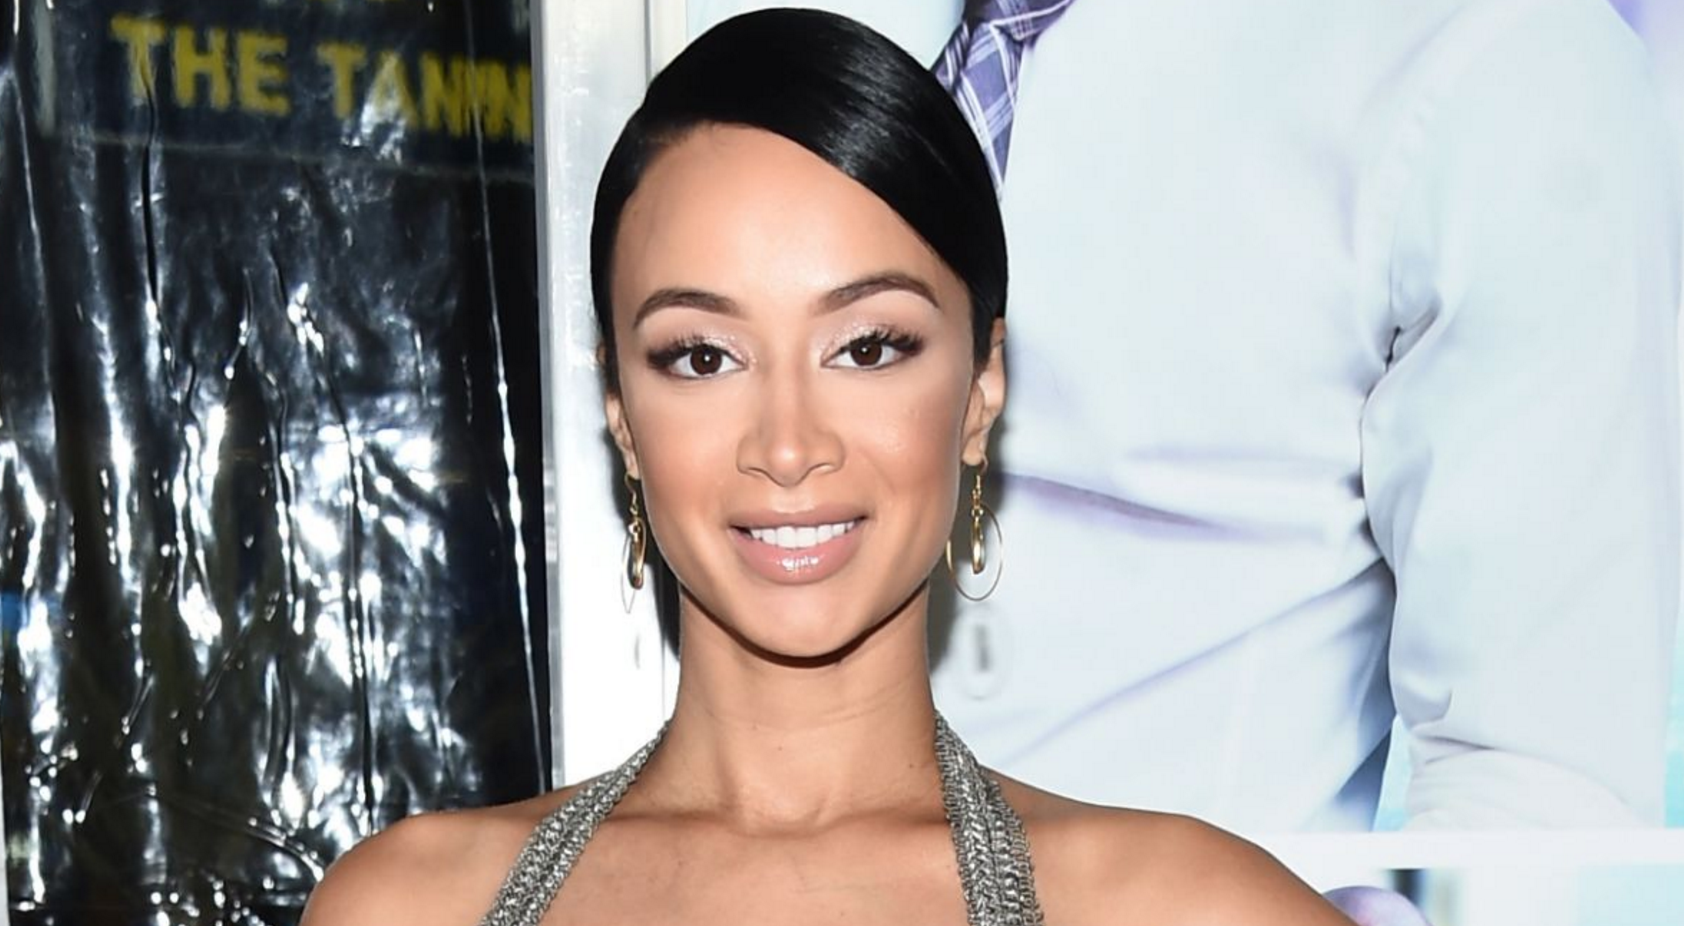 draya michele instagram birth with doctor david ahdoot gyn burbank california